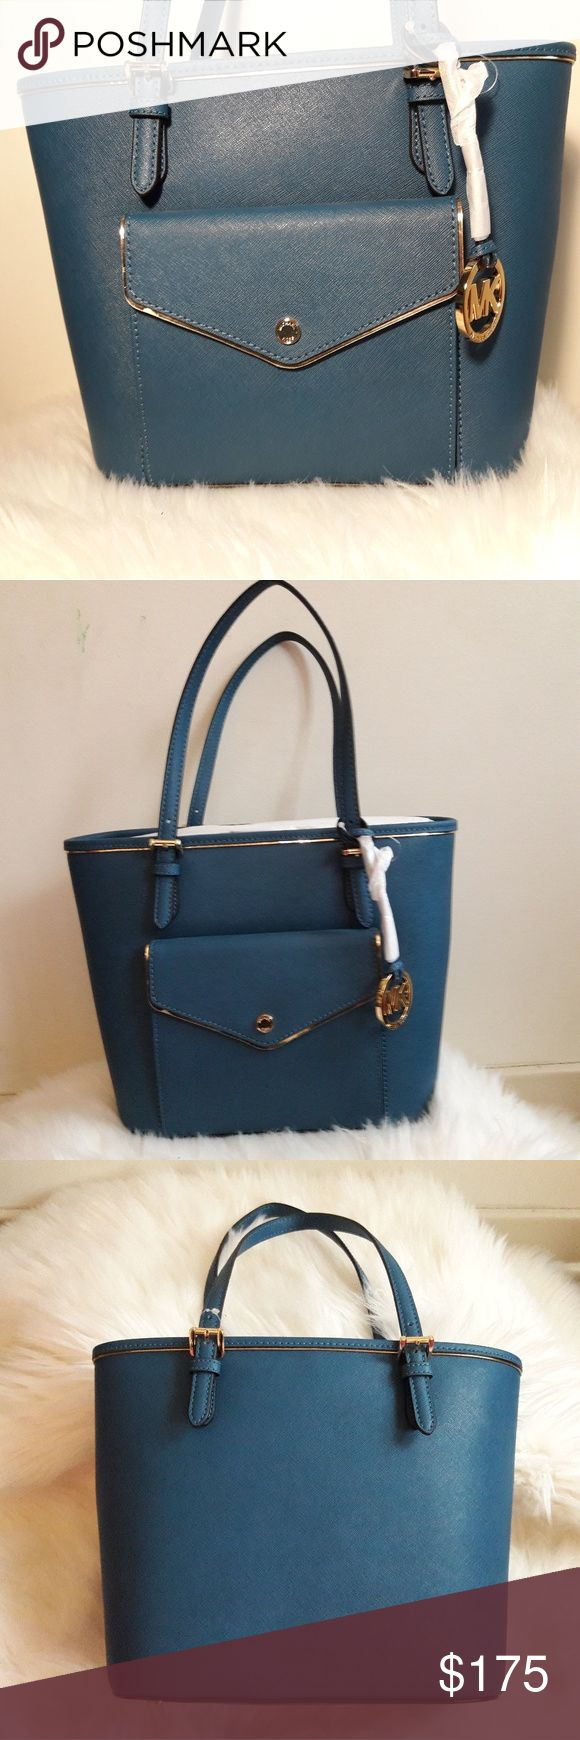 Authentic Michael Kors Leather Tote Handbag Purse Brand New Authentic Michael Kors Saffiano Frame Steel Blue Leather Tote Bag Purse.  Please be sure to view all images before purchasing.   Thank you for Looking & Sharing Happy Poshing😄💗 MICHAEL Michael Kors Bags Totes